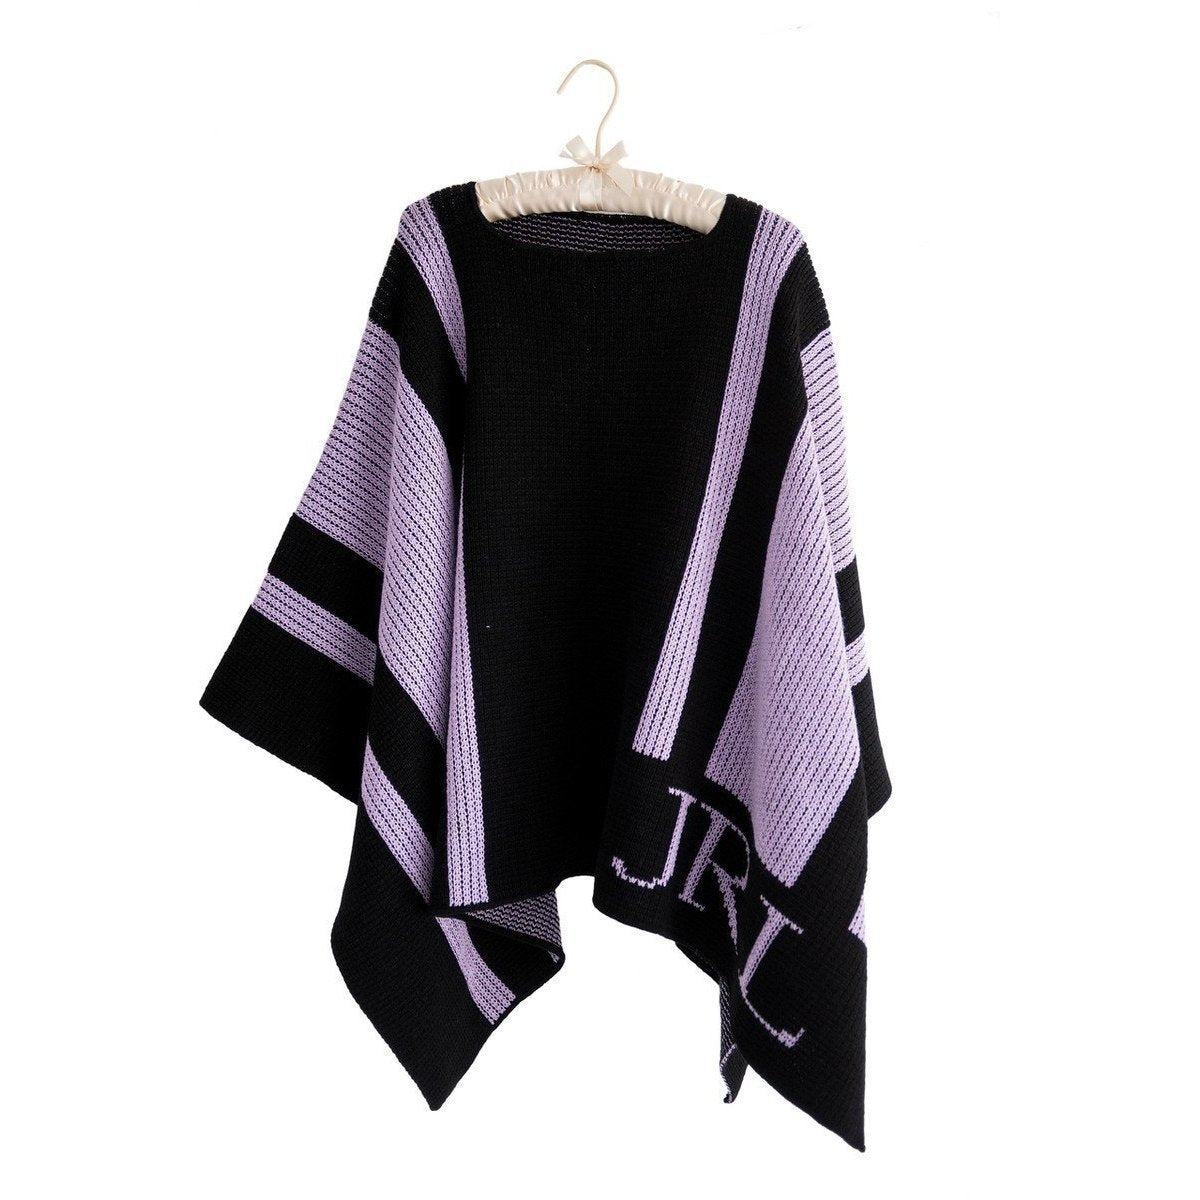 Striped Personalized Blanket Poncho-Poncho-Default-Jack and Jill Boutique